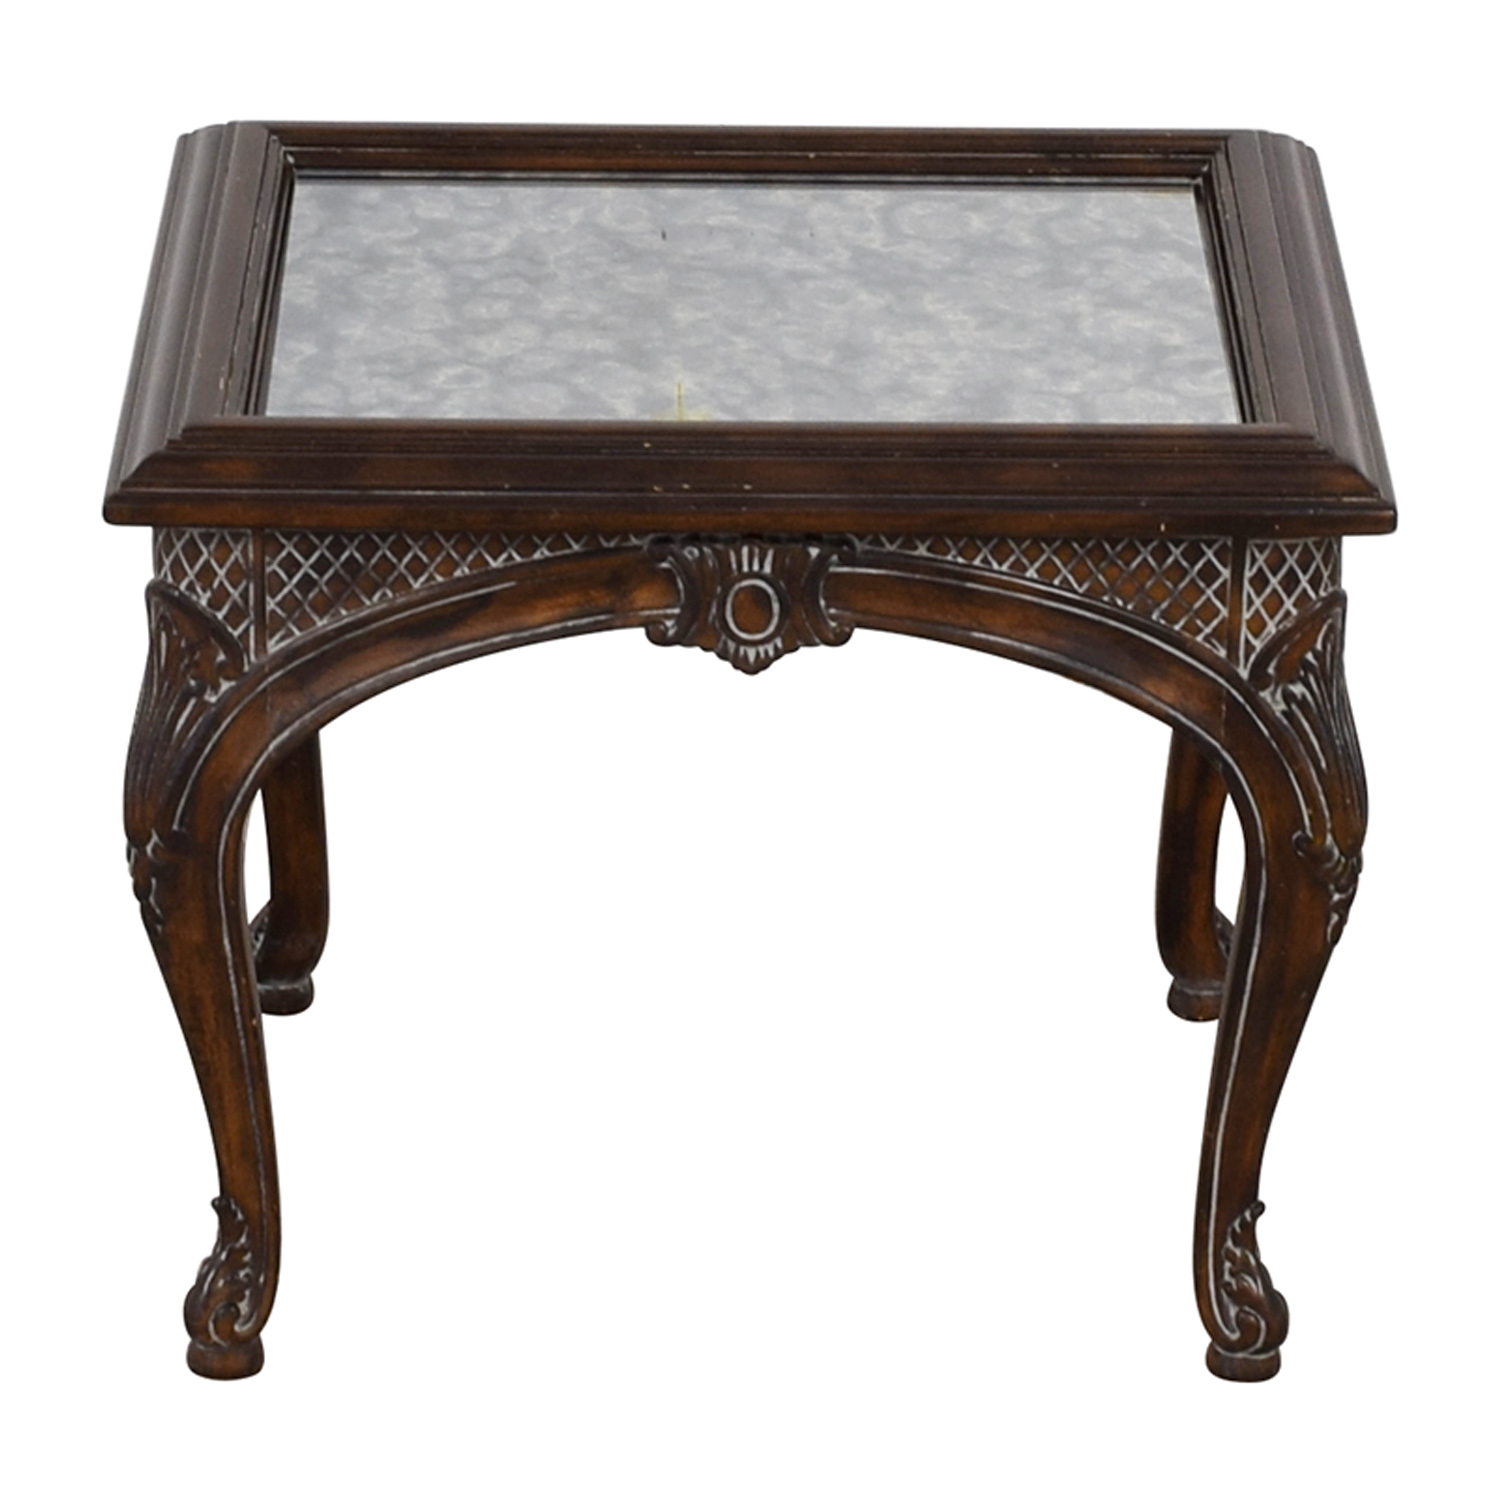 Antique Mirrored Ebony Wood Carved Side Table sale